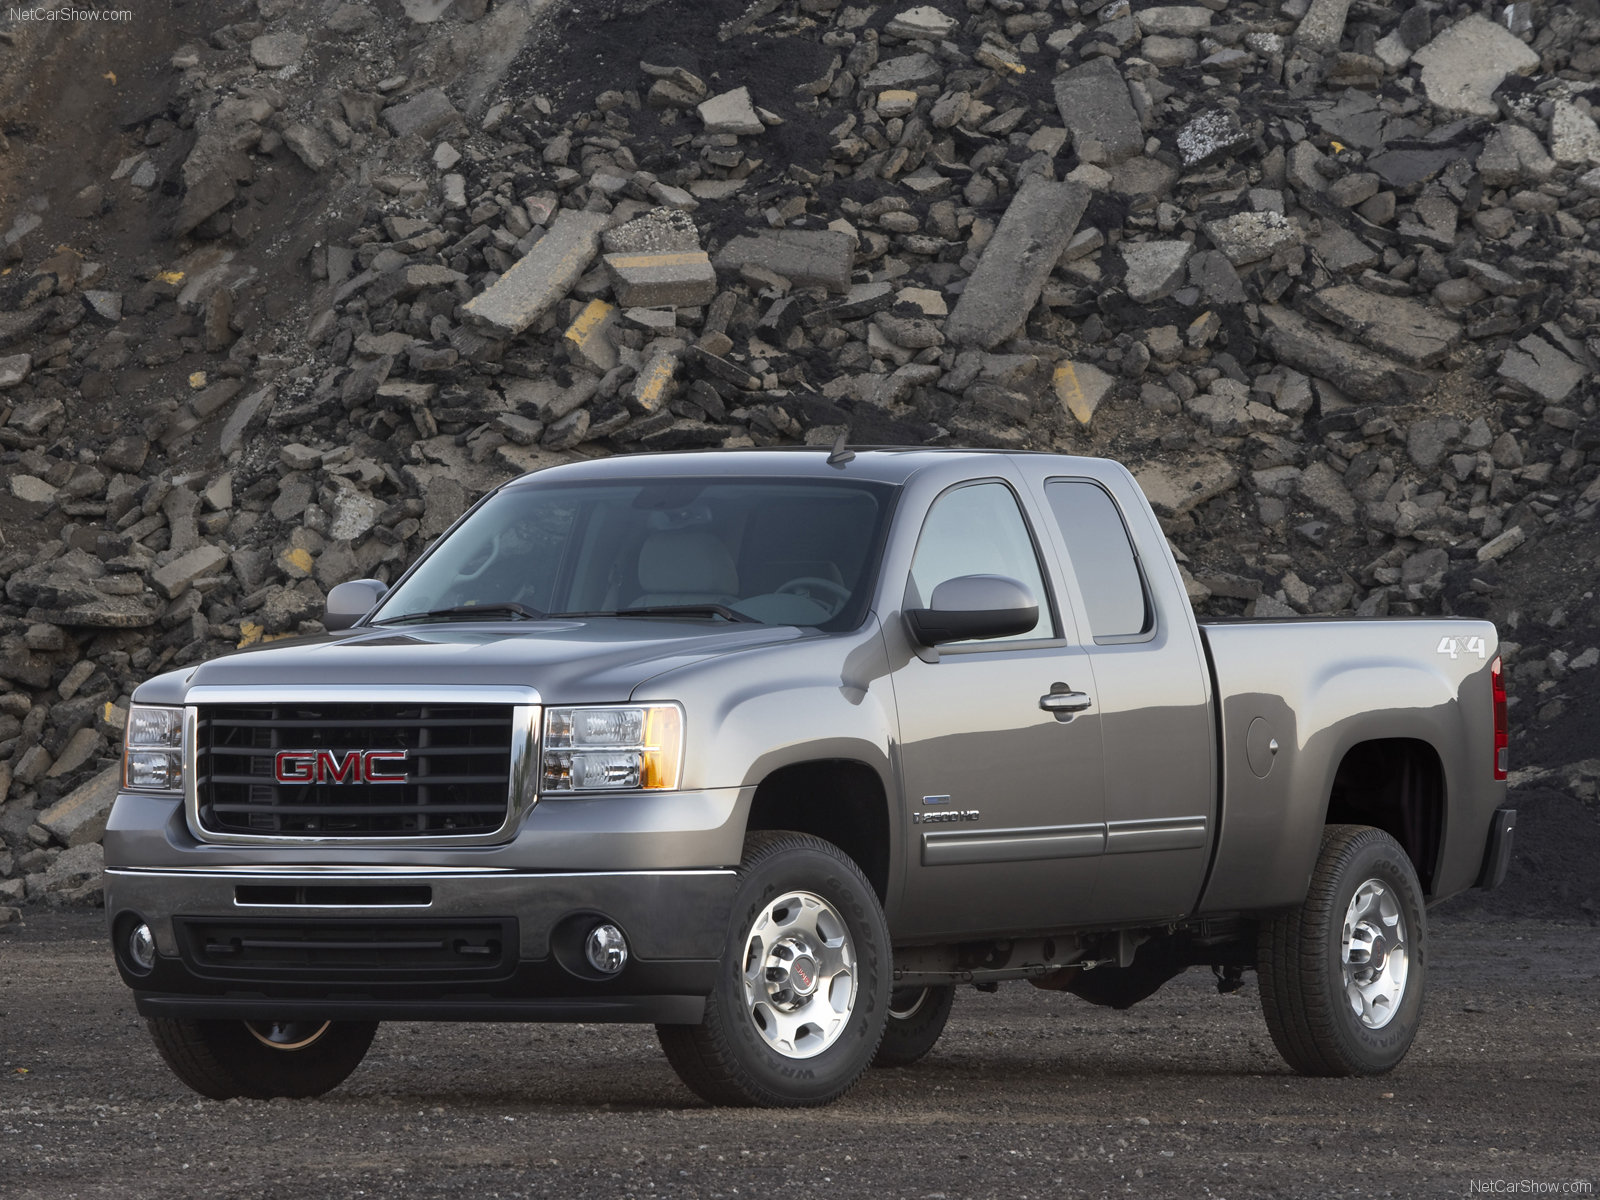 GMC Sierra Extended Cab photo 41410